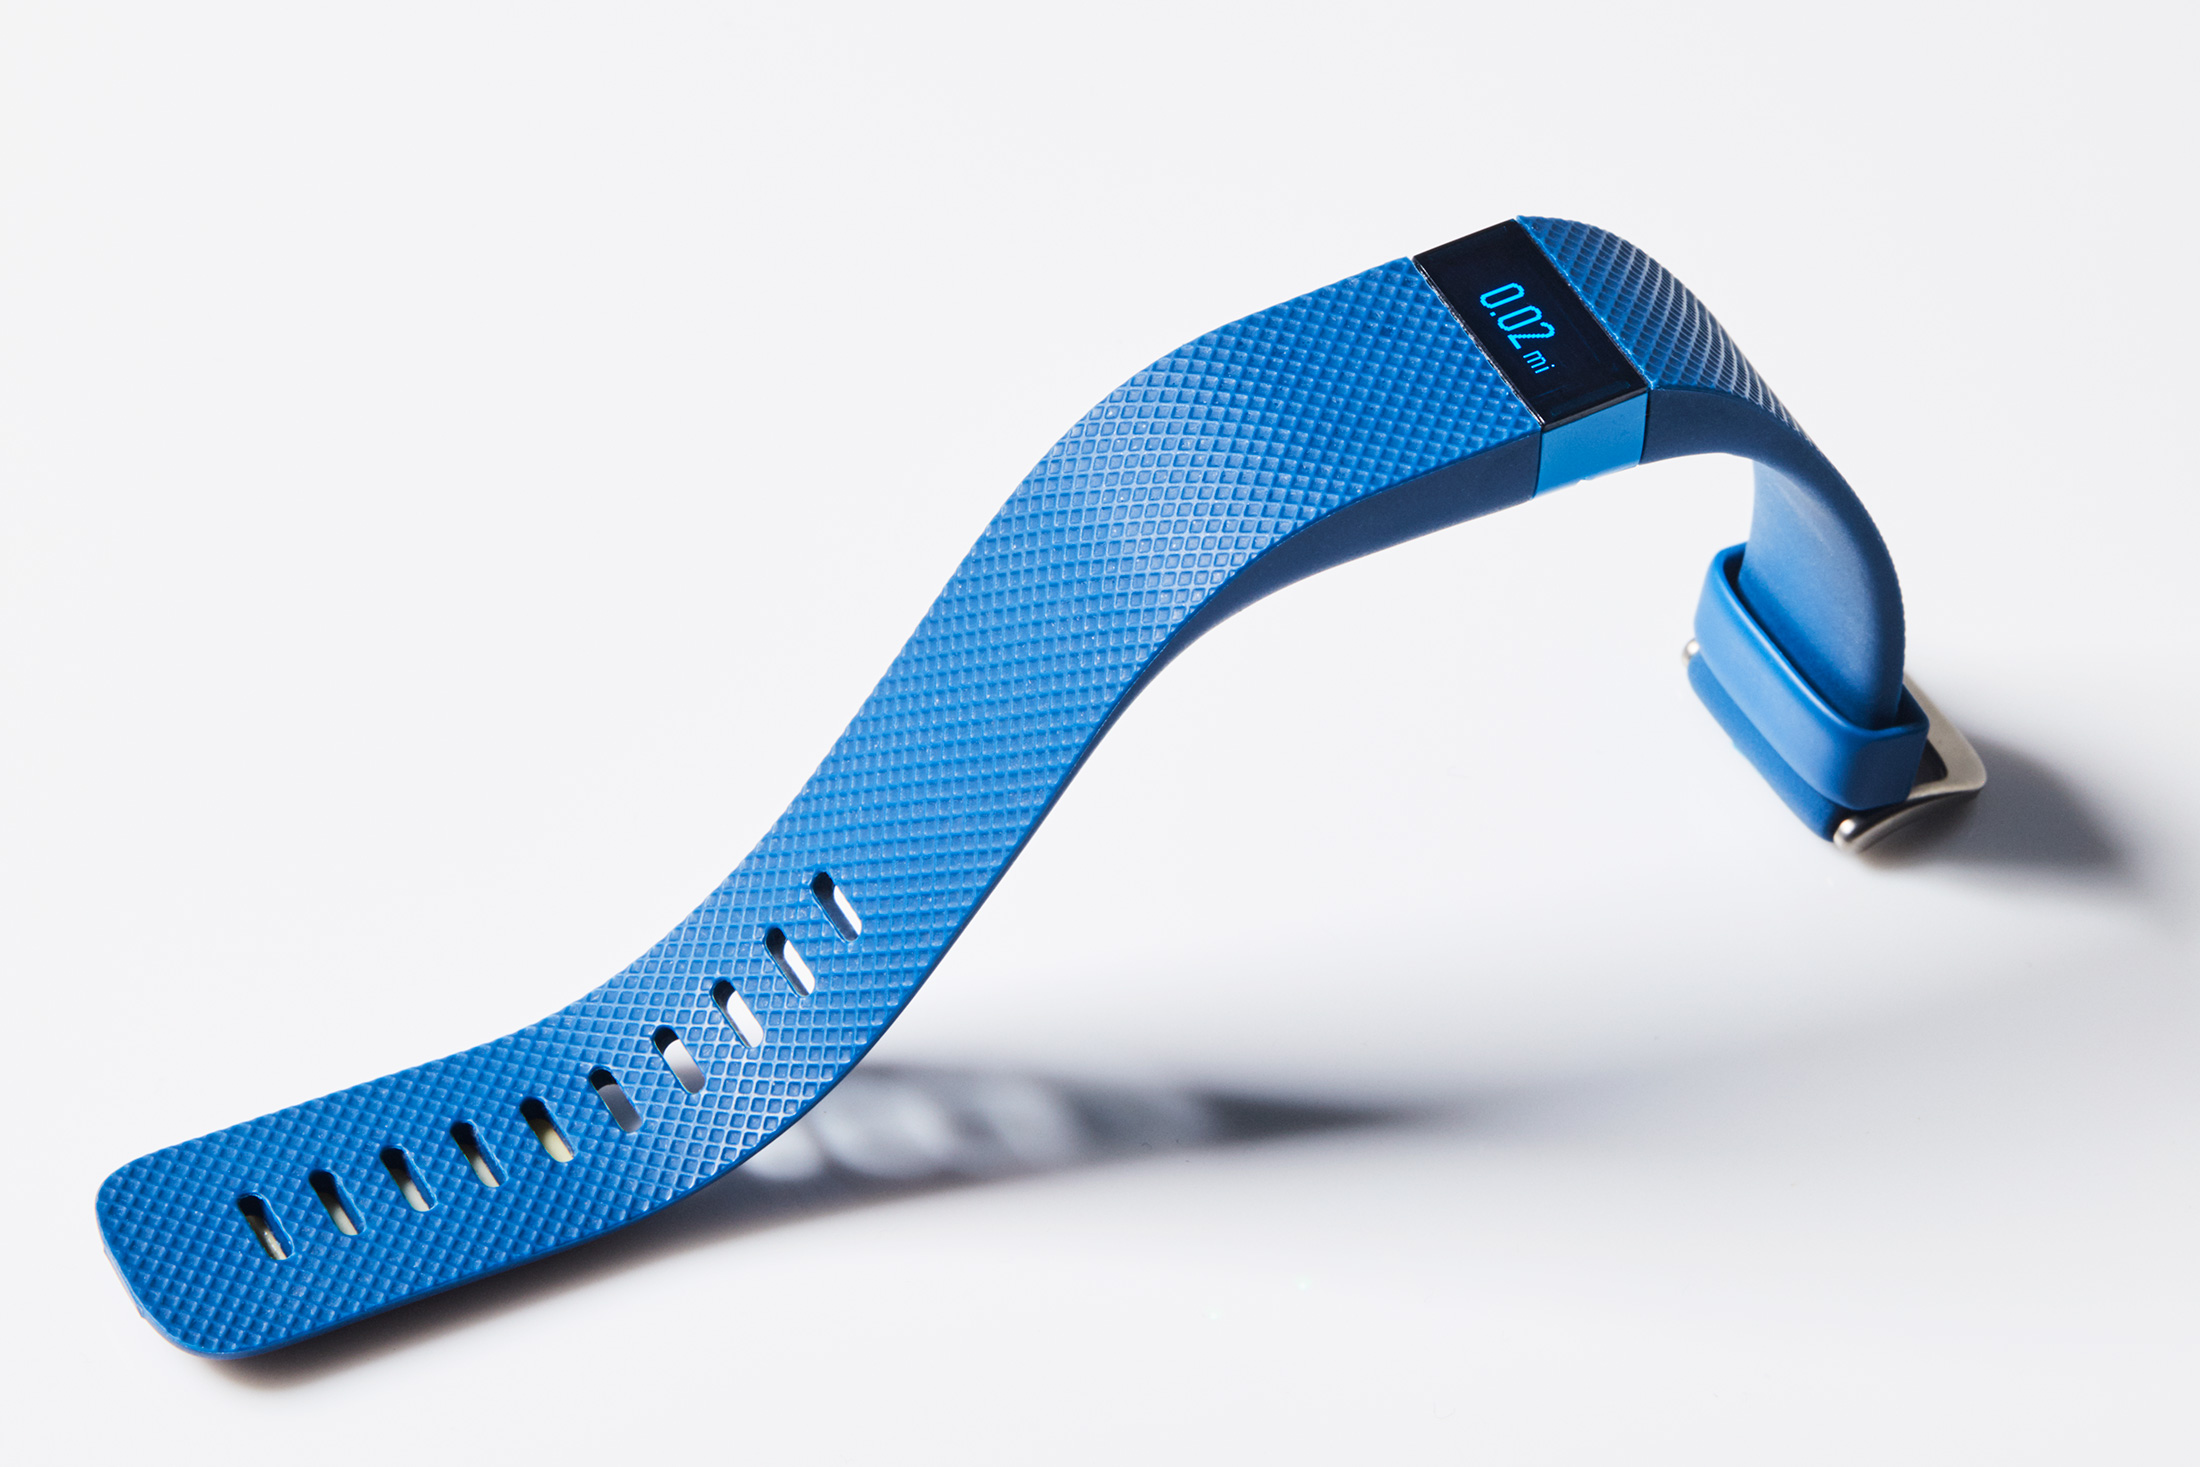 bloomberg.com - Katherine Chiglinsky - Life Insurance Companies Are Luring Fitbit and Apple Watch Users With Deals